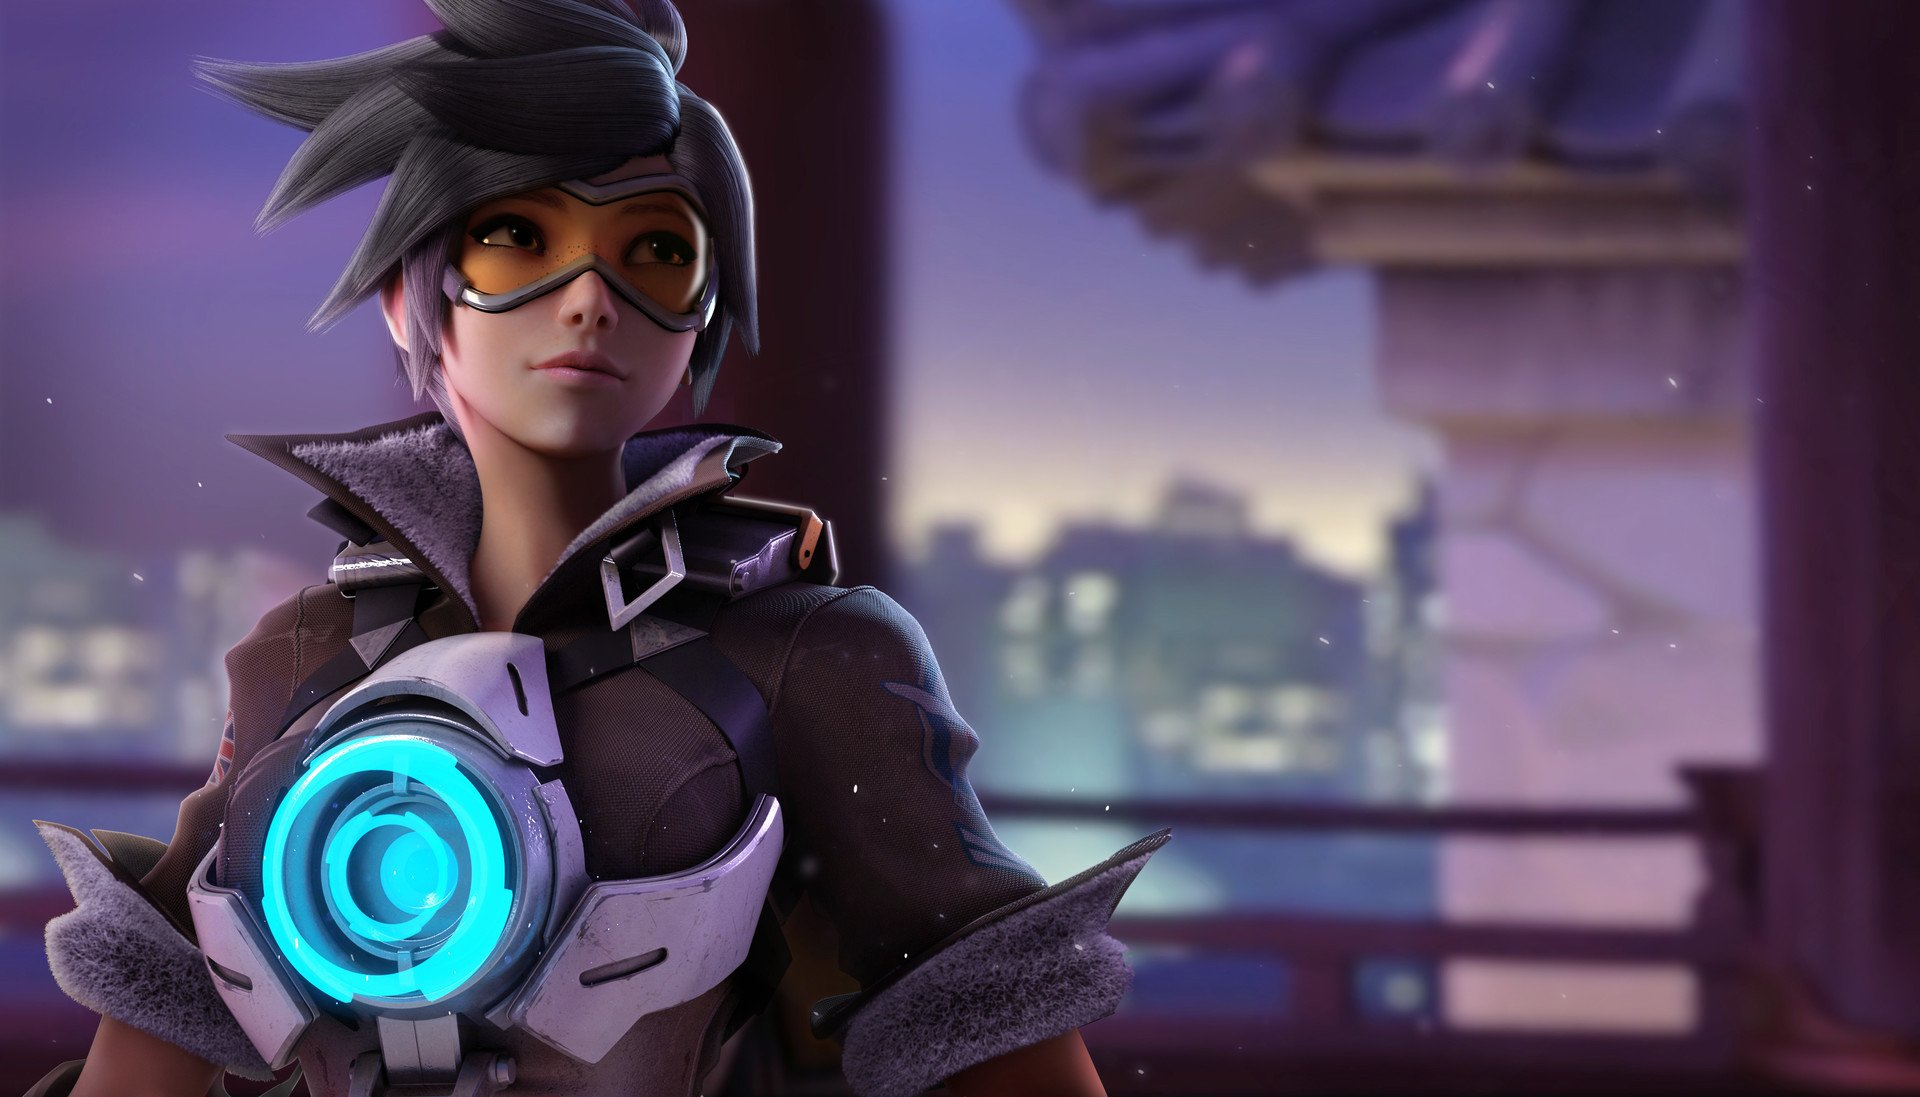 Video Game - Overwatch  Tracer (Overwatch) Wallpaper